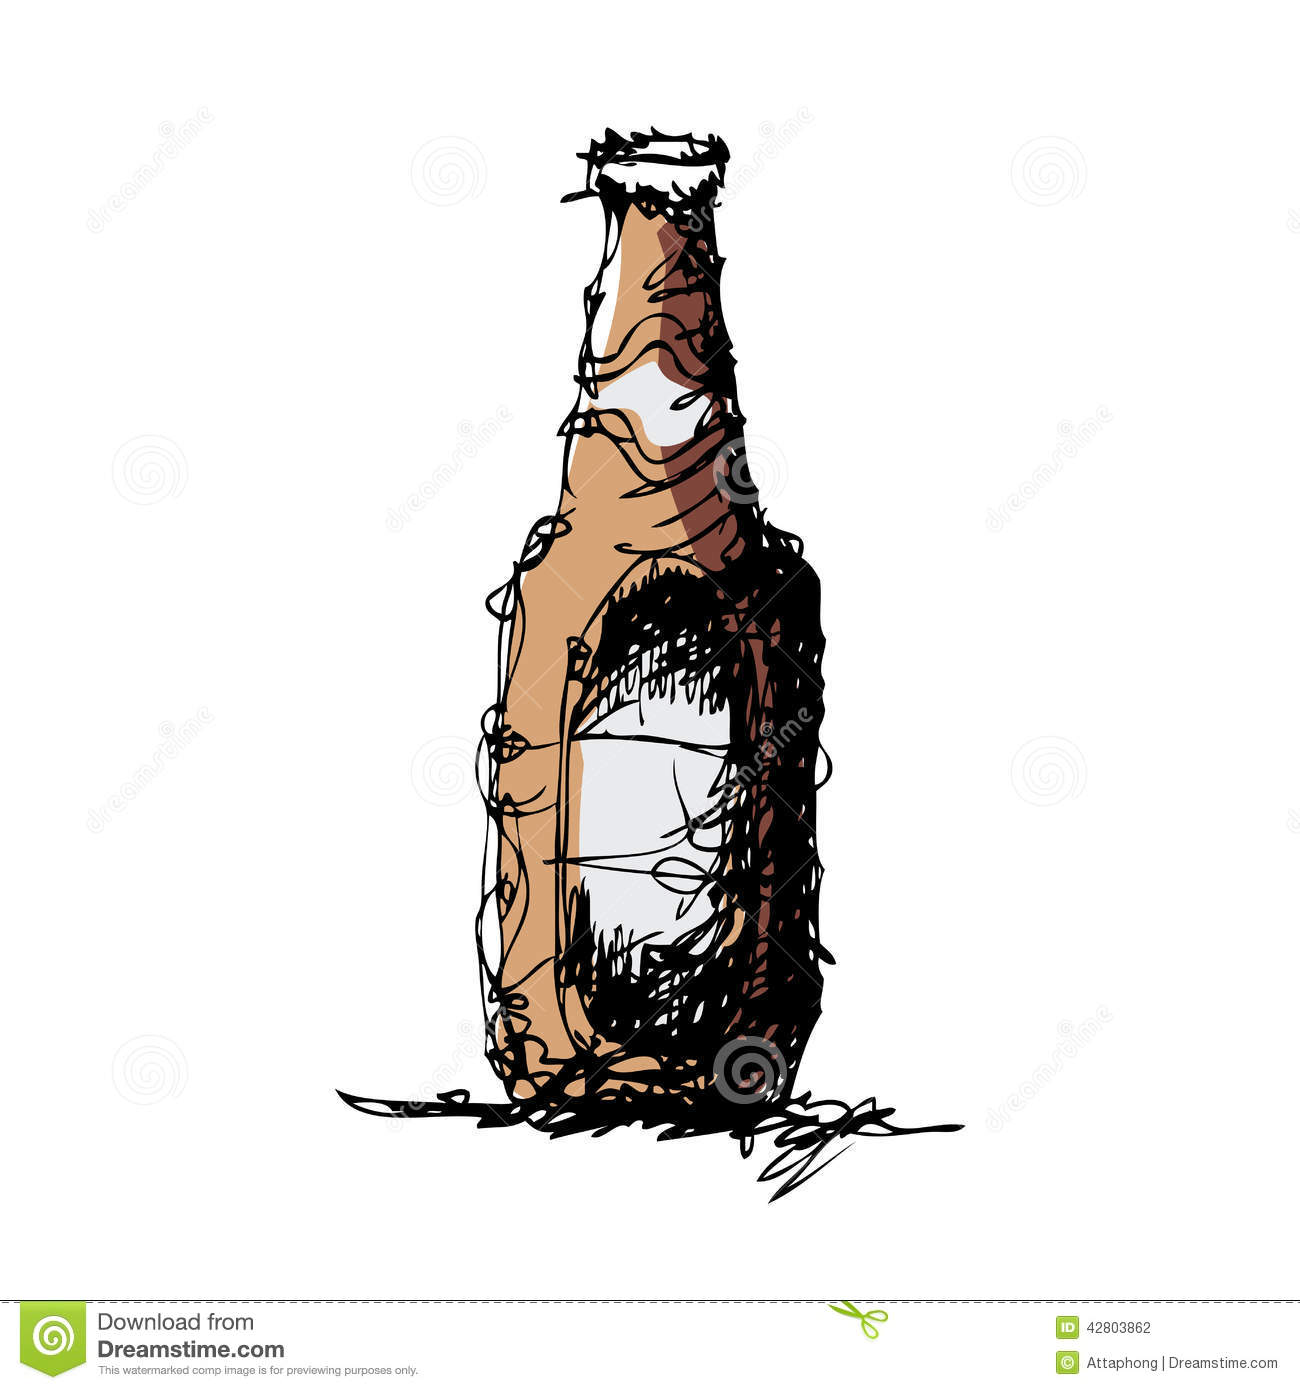 Sketch Drawing Of A Beer Bottle Stock Vector - Image: 42803862